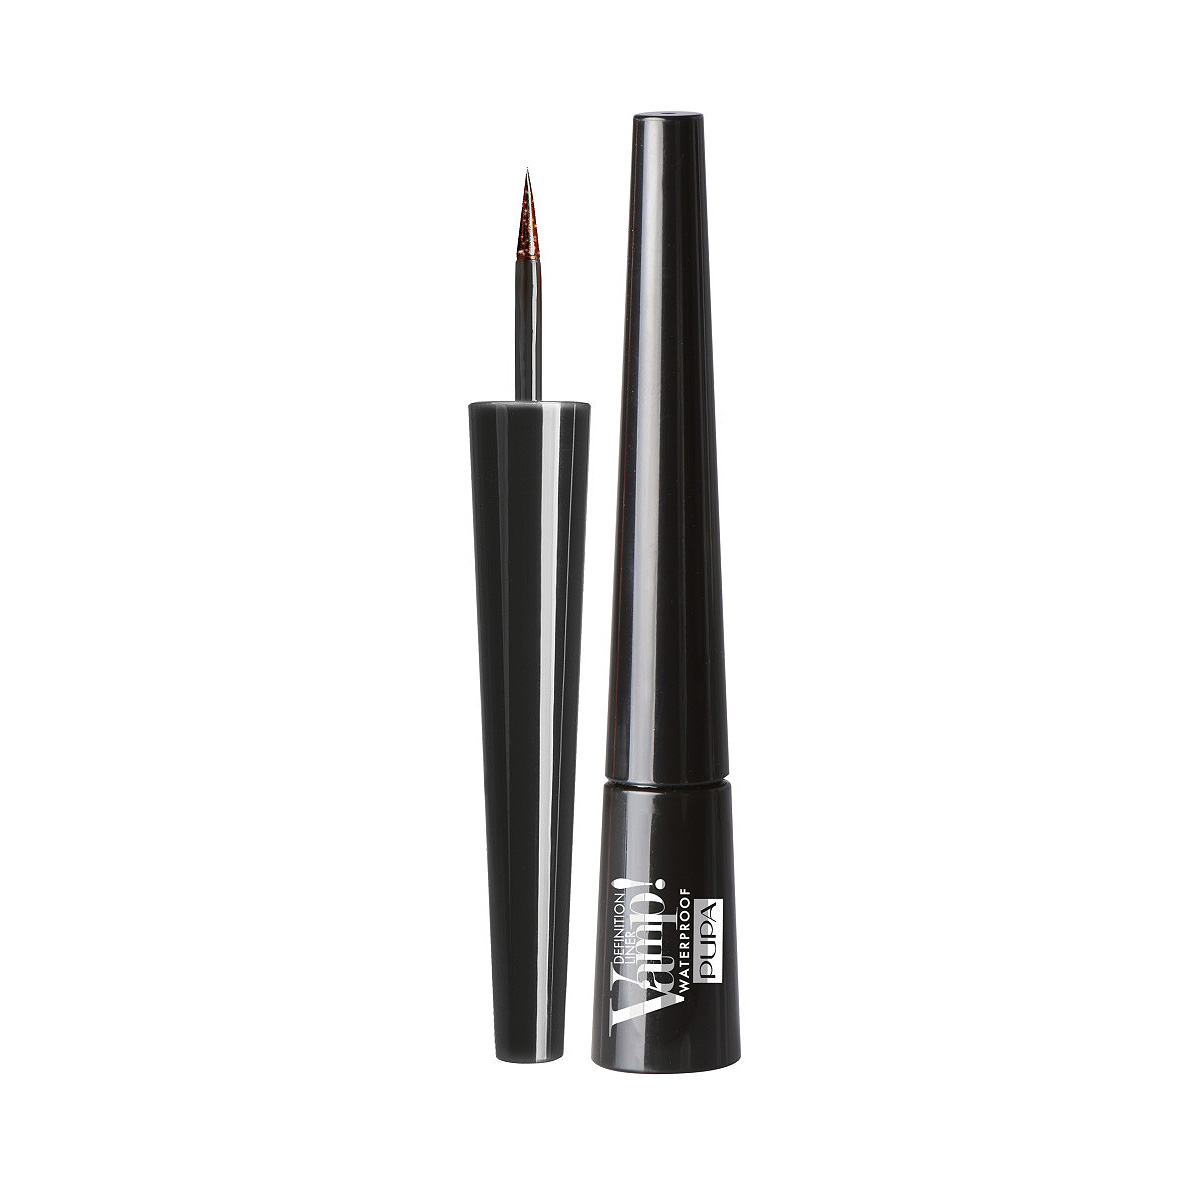 Pupa  Vamp definition liner waterproof  eyeliner 002 pearly brown